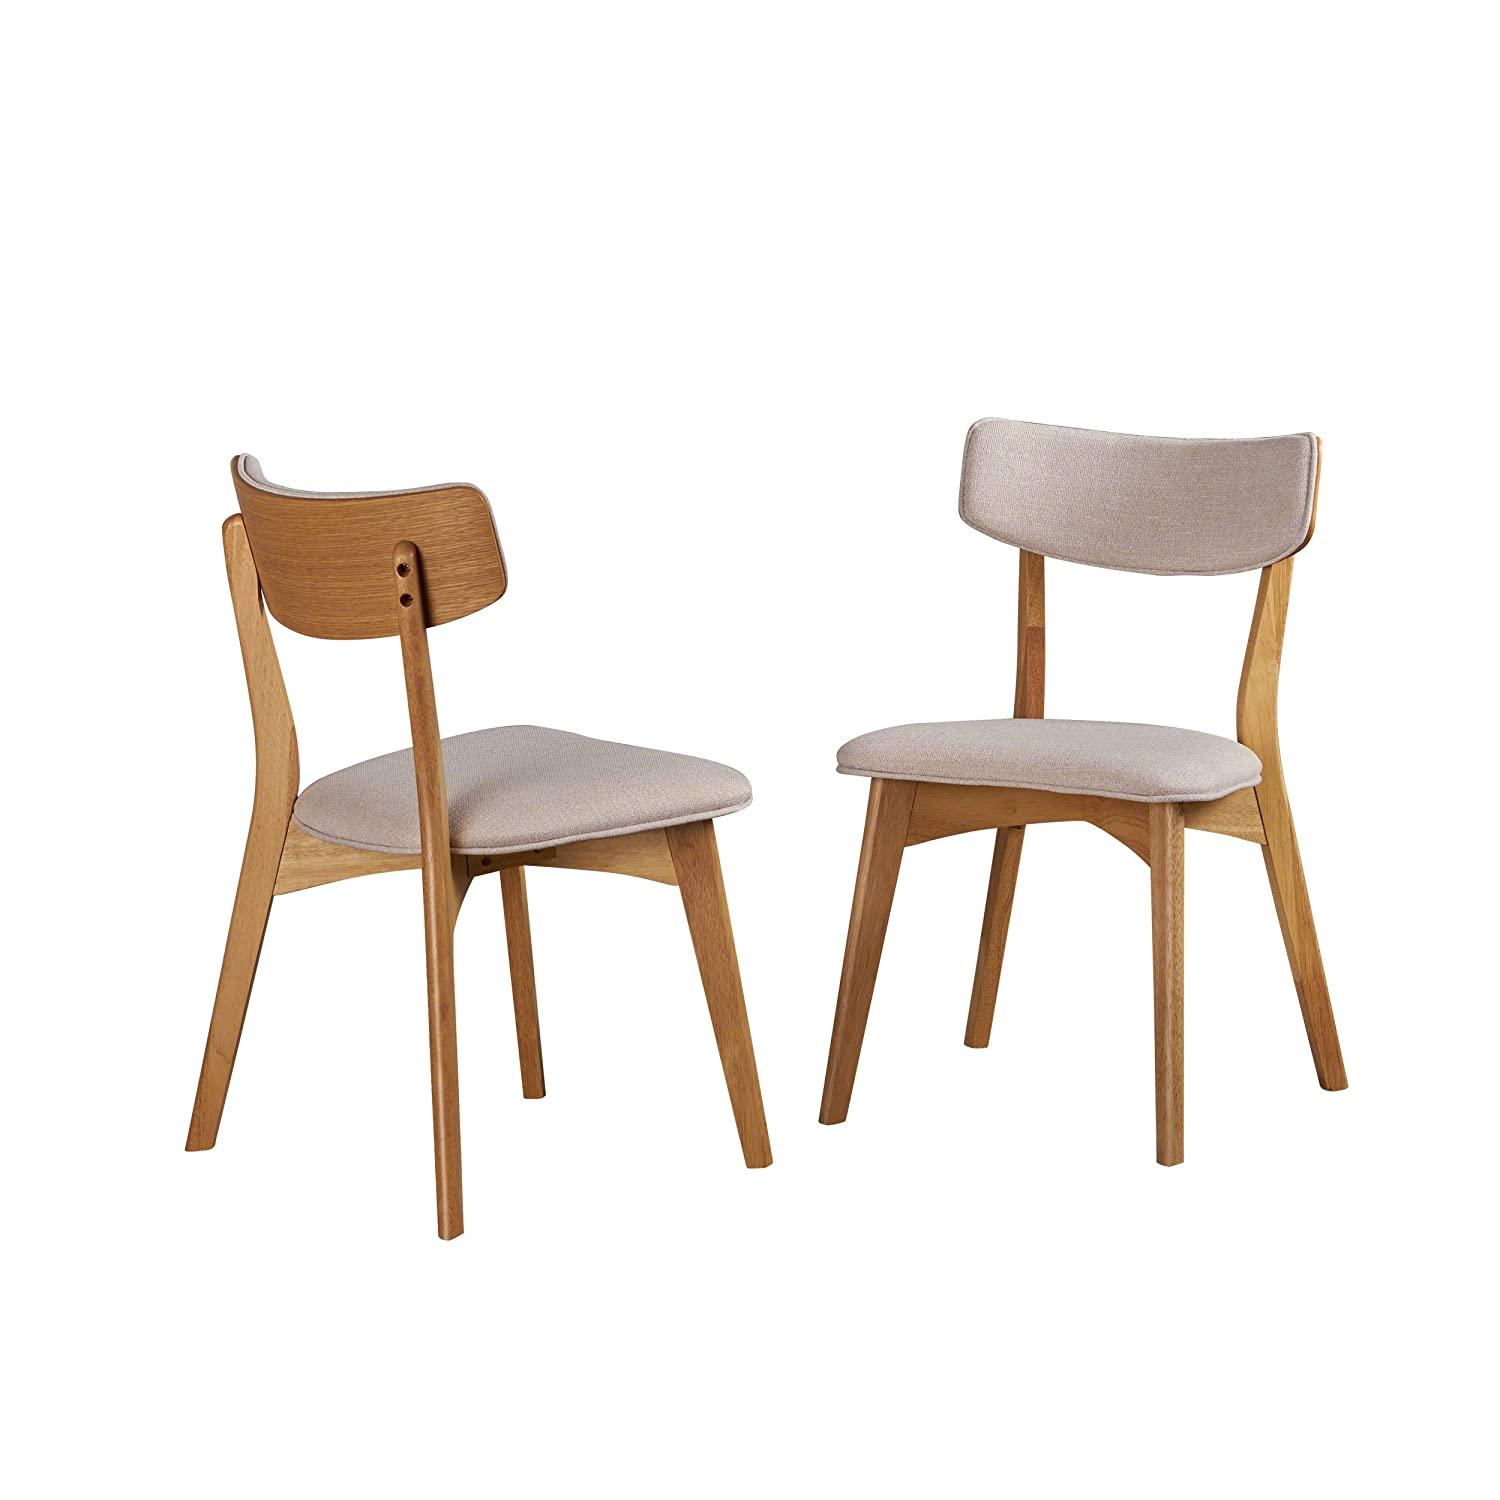 Christopher Knight Home Molly Mid Century Modern Light Beige Dining Chairs with Natural Oak Finished Rubberwood Frame Set of 2